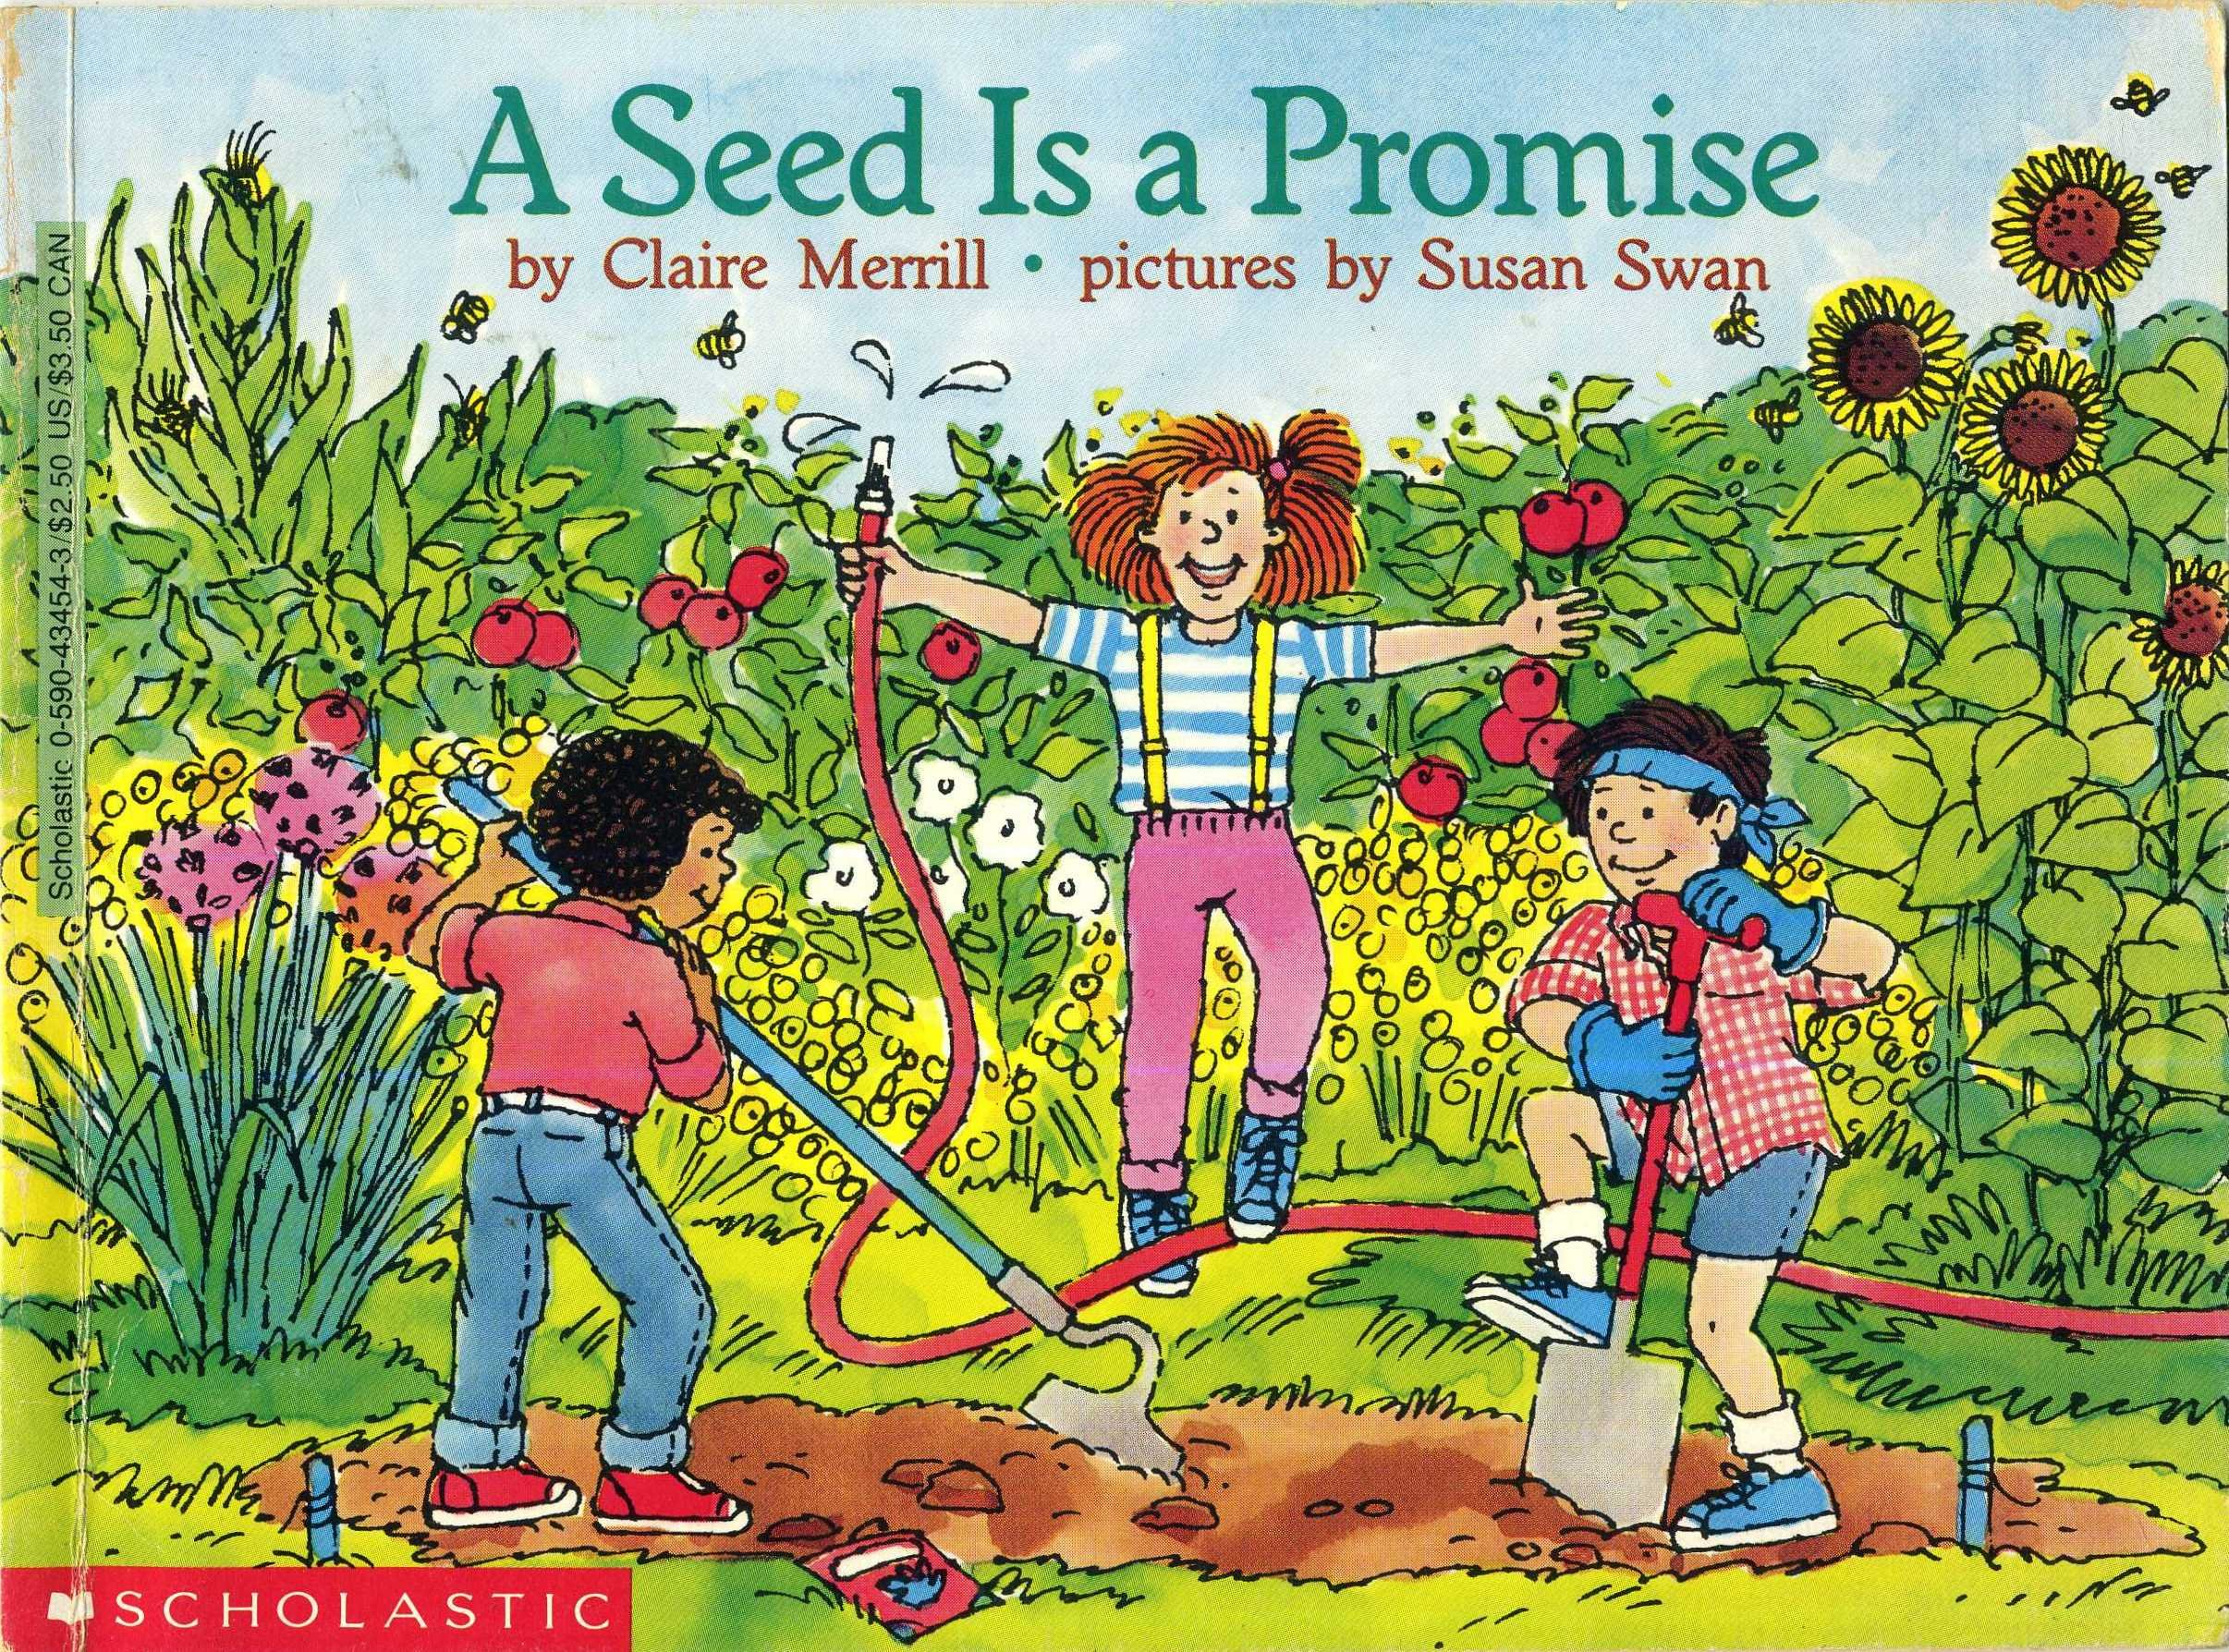 a-seed-is-a-promise